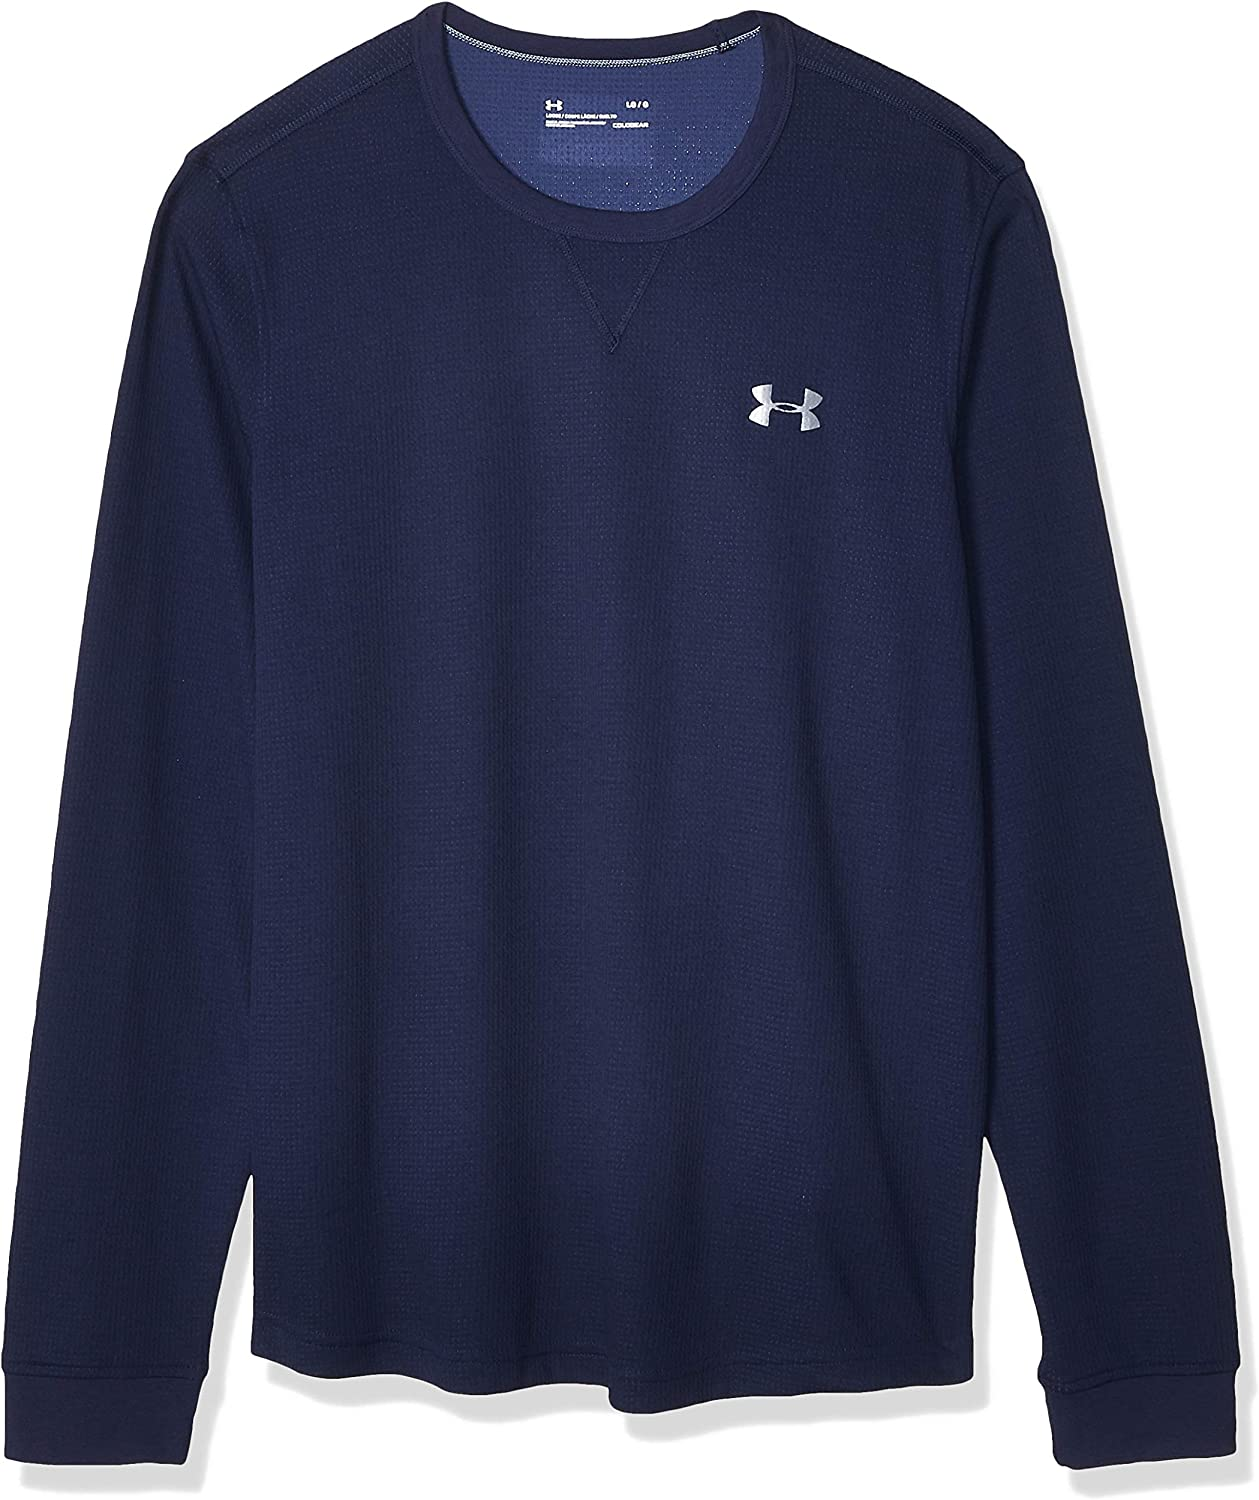 Under Armour Men Ua Waffle Long Sleeve Crew